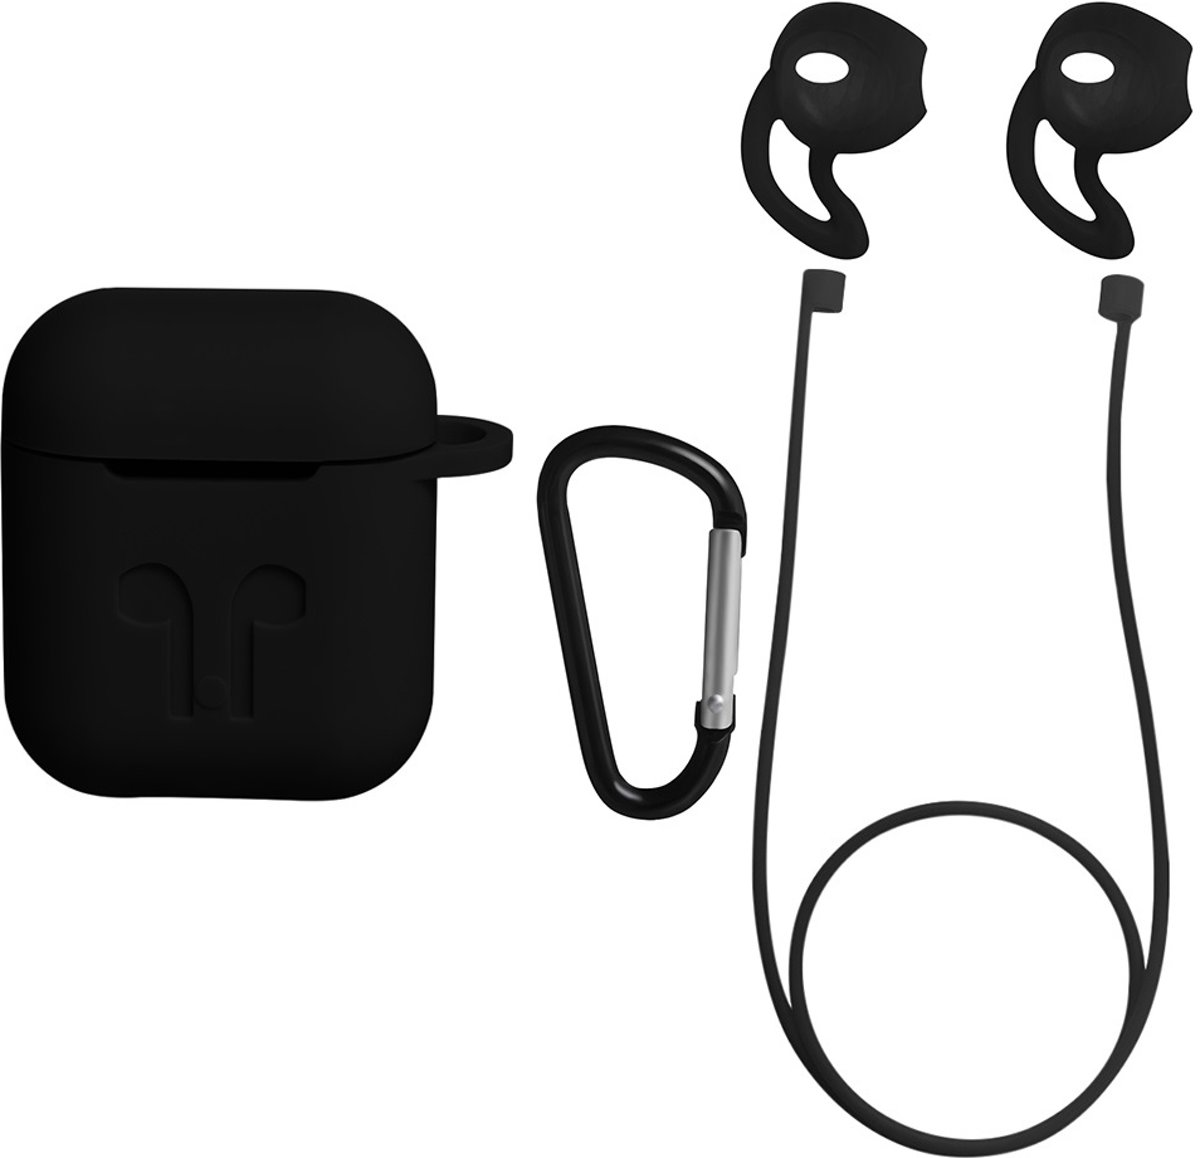 Anti Lost Strap & Case Hoes Voor Apple Airpods - Siliconen Wireless Band & Beschermhoes Cover - zwart | Airpods hoesje kopen